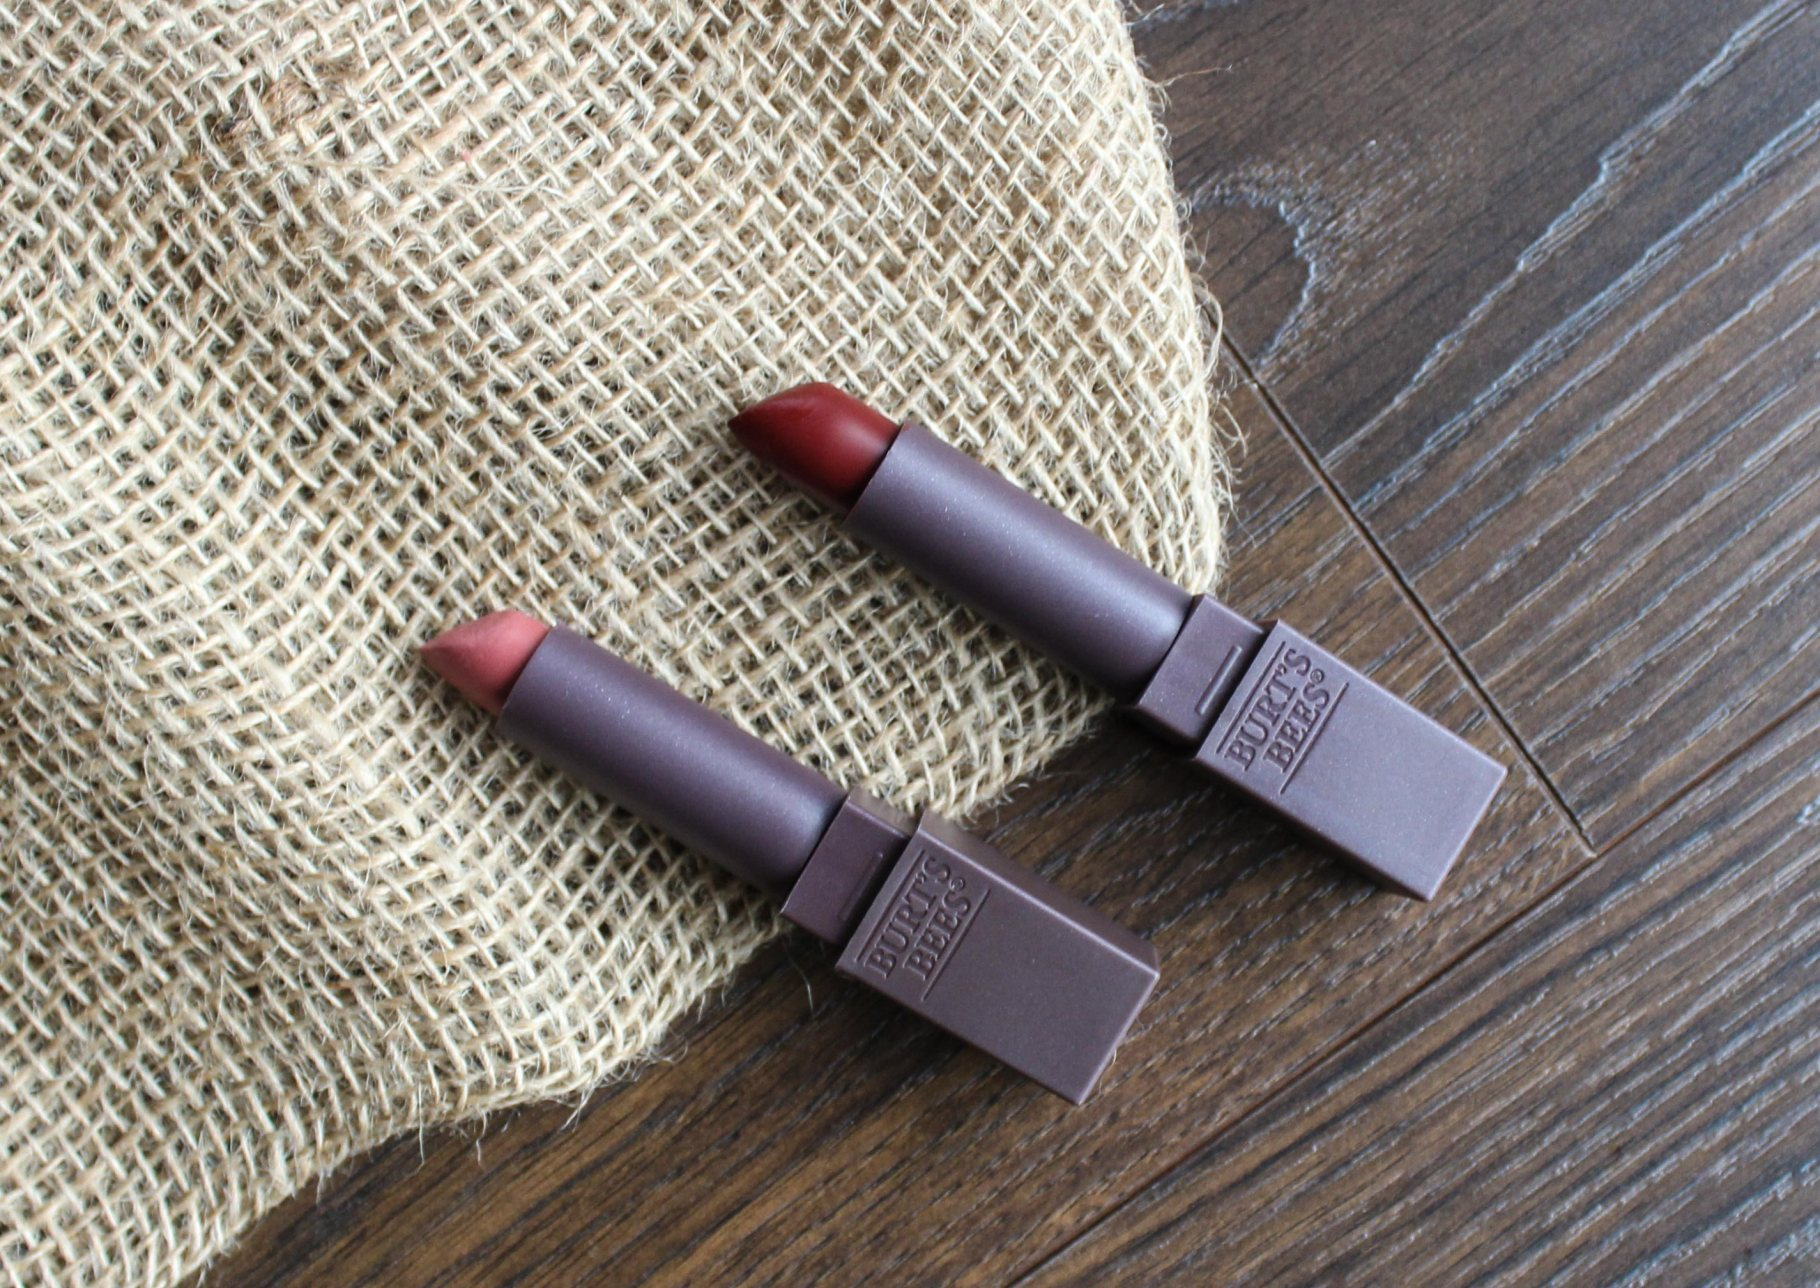 Burt's Bees Natural Lipstick Review